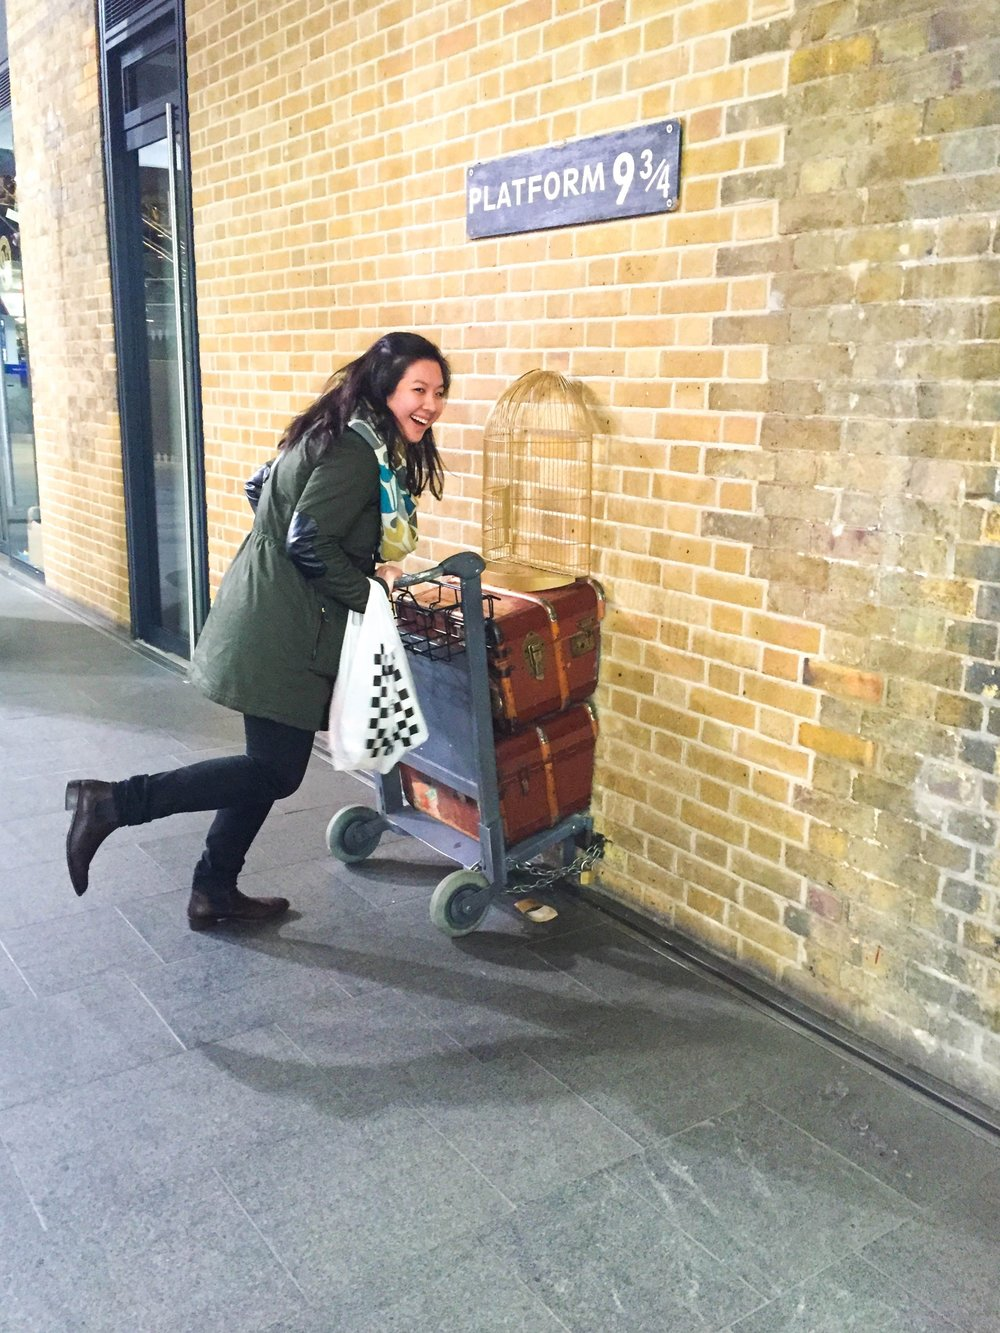 Platform 9 3/4 in London, England